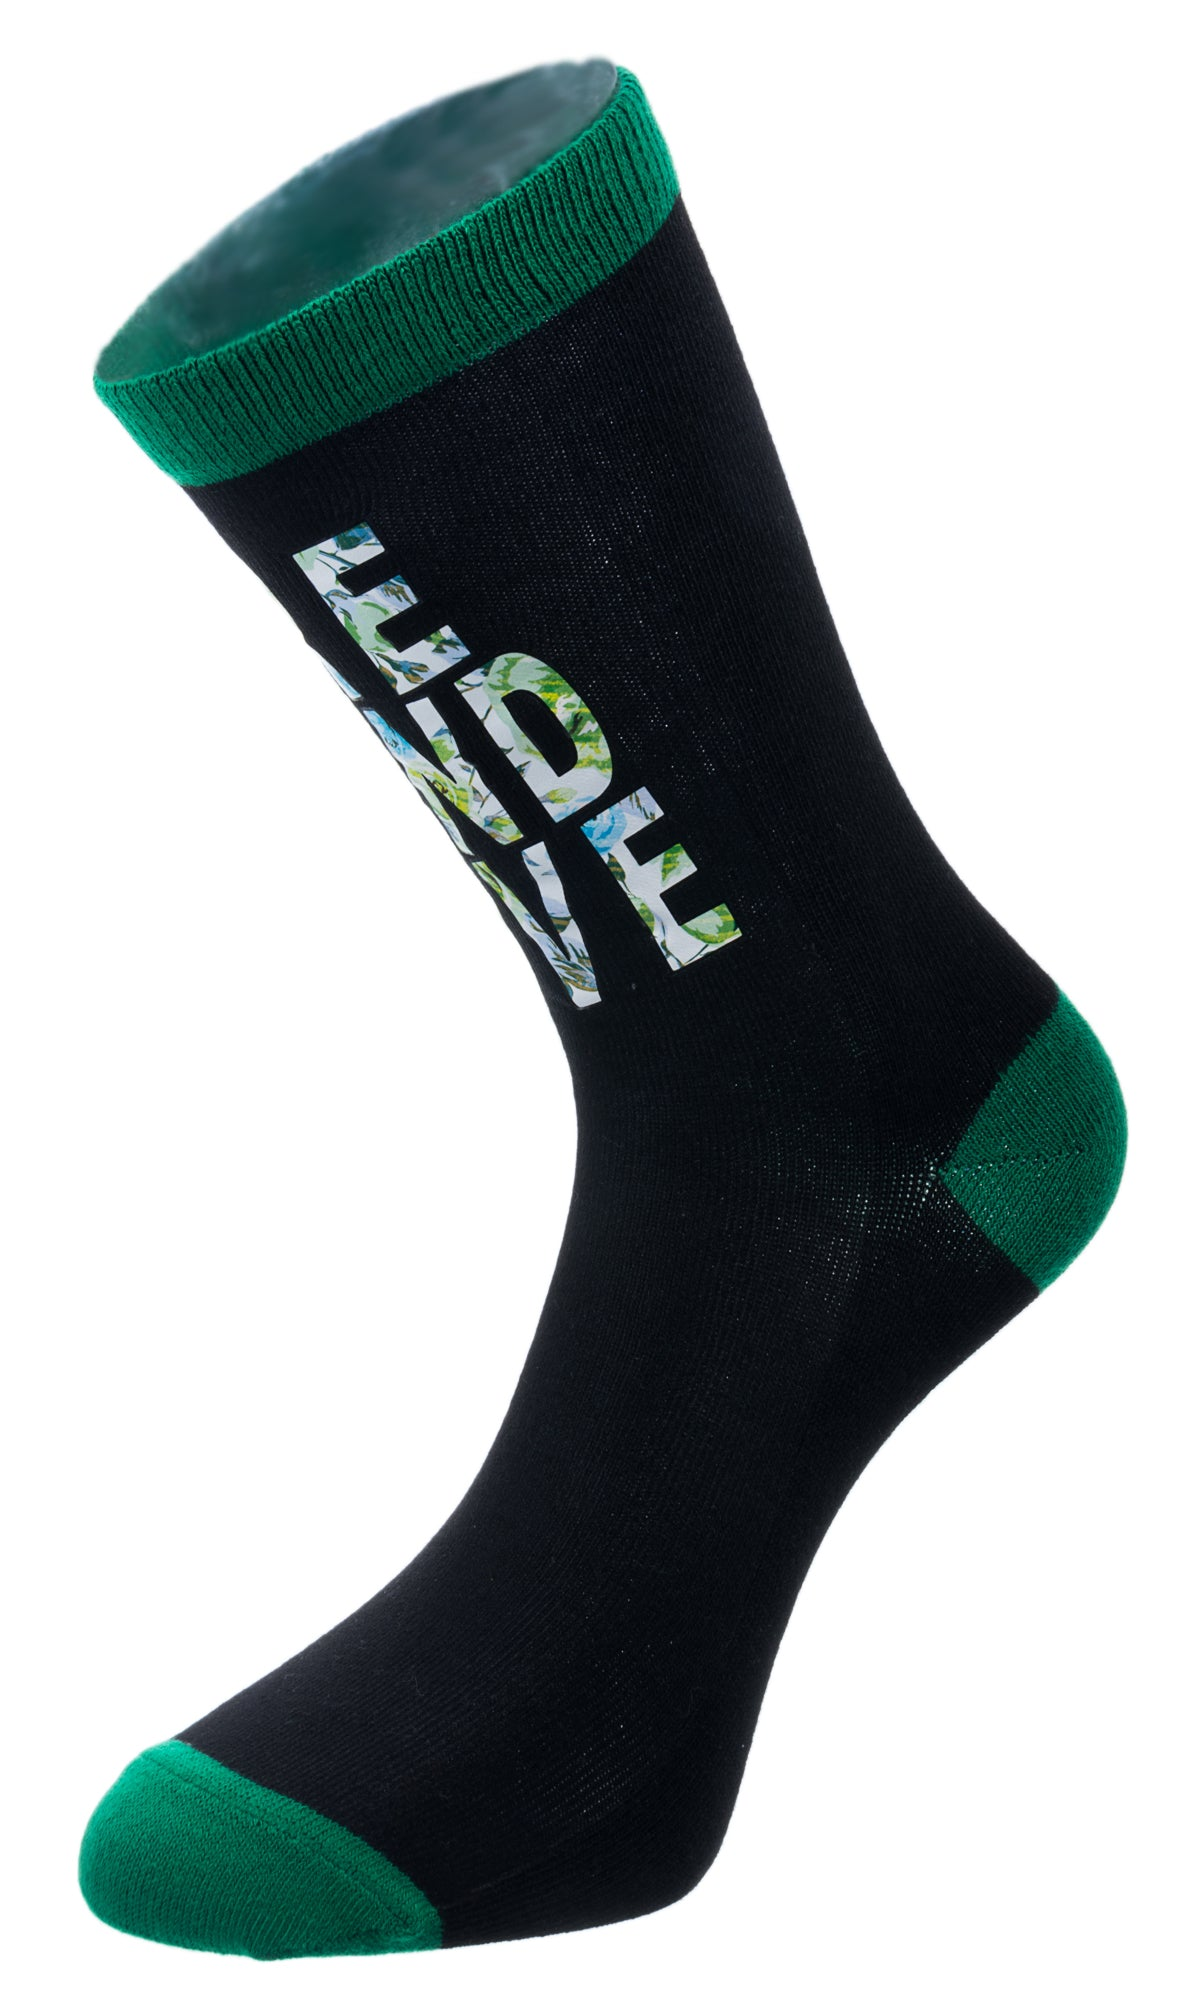 Socks, Ireland, black and green, Ireland Love - small size - Robin Ruth